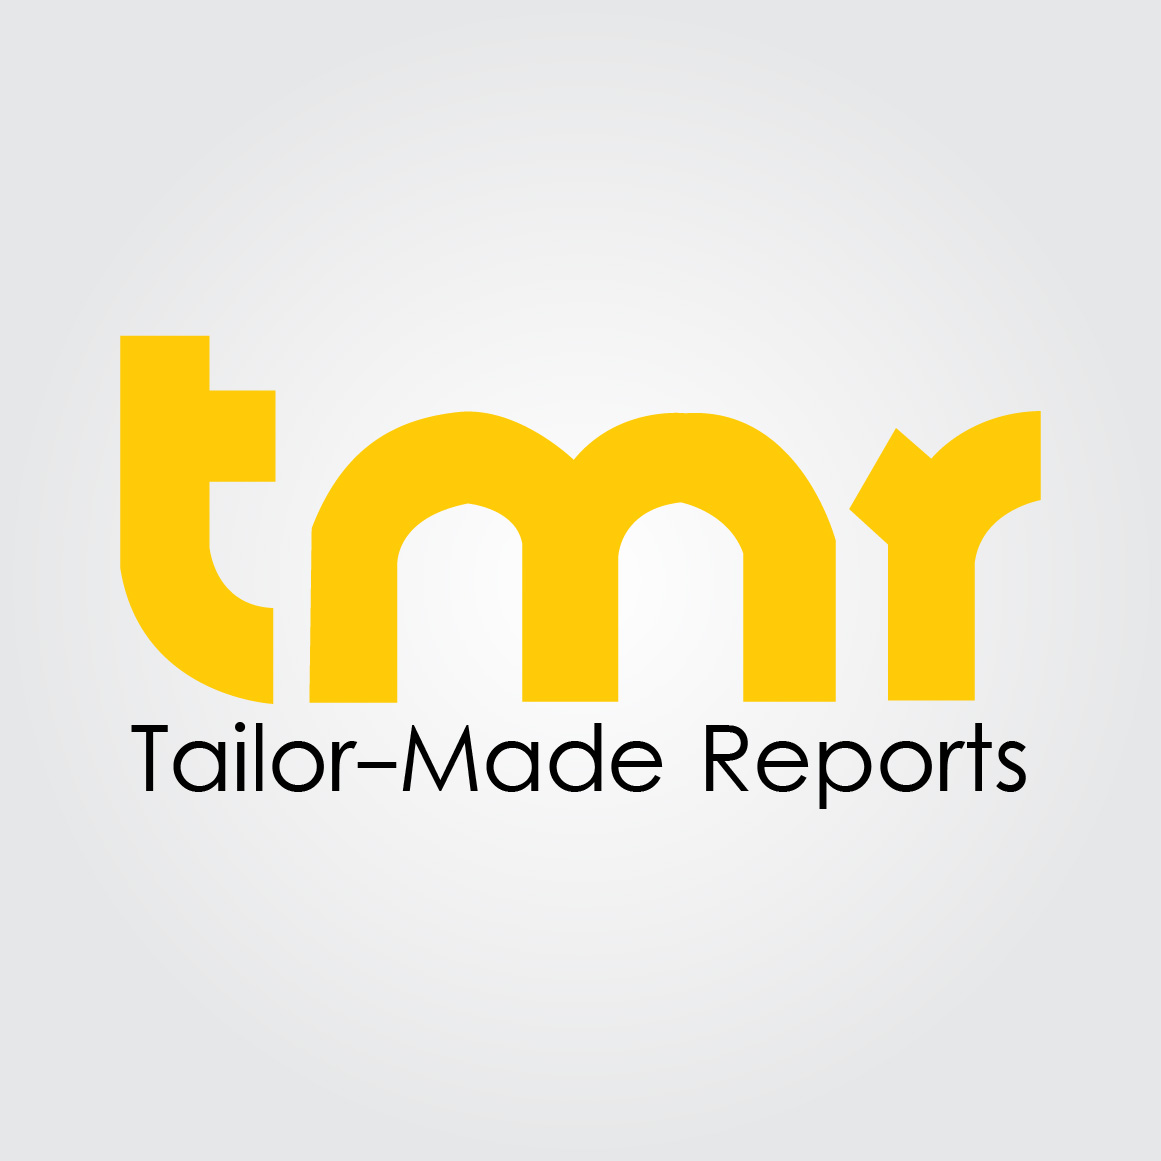 Footwear Market - Rising Demand for Designer and Limited Footwear Edition | TMR Research Study